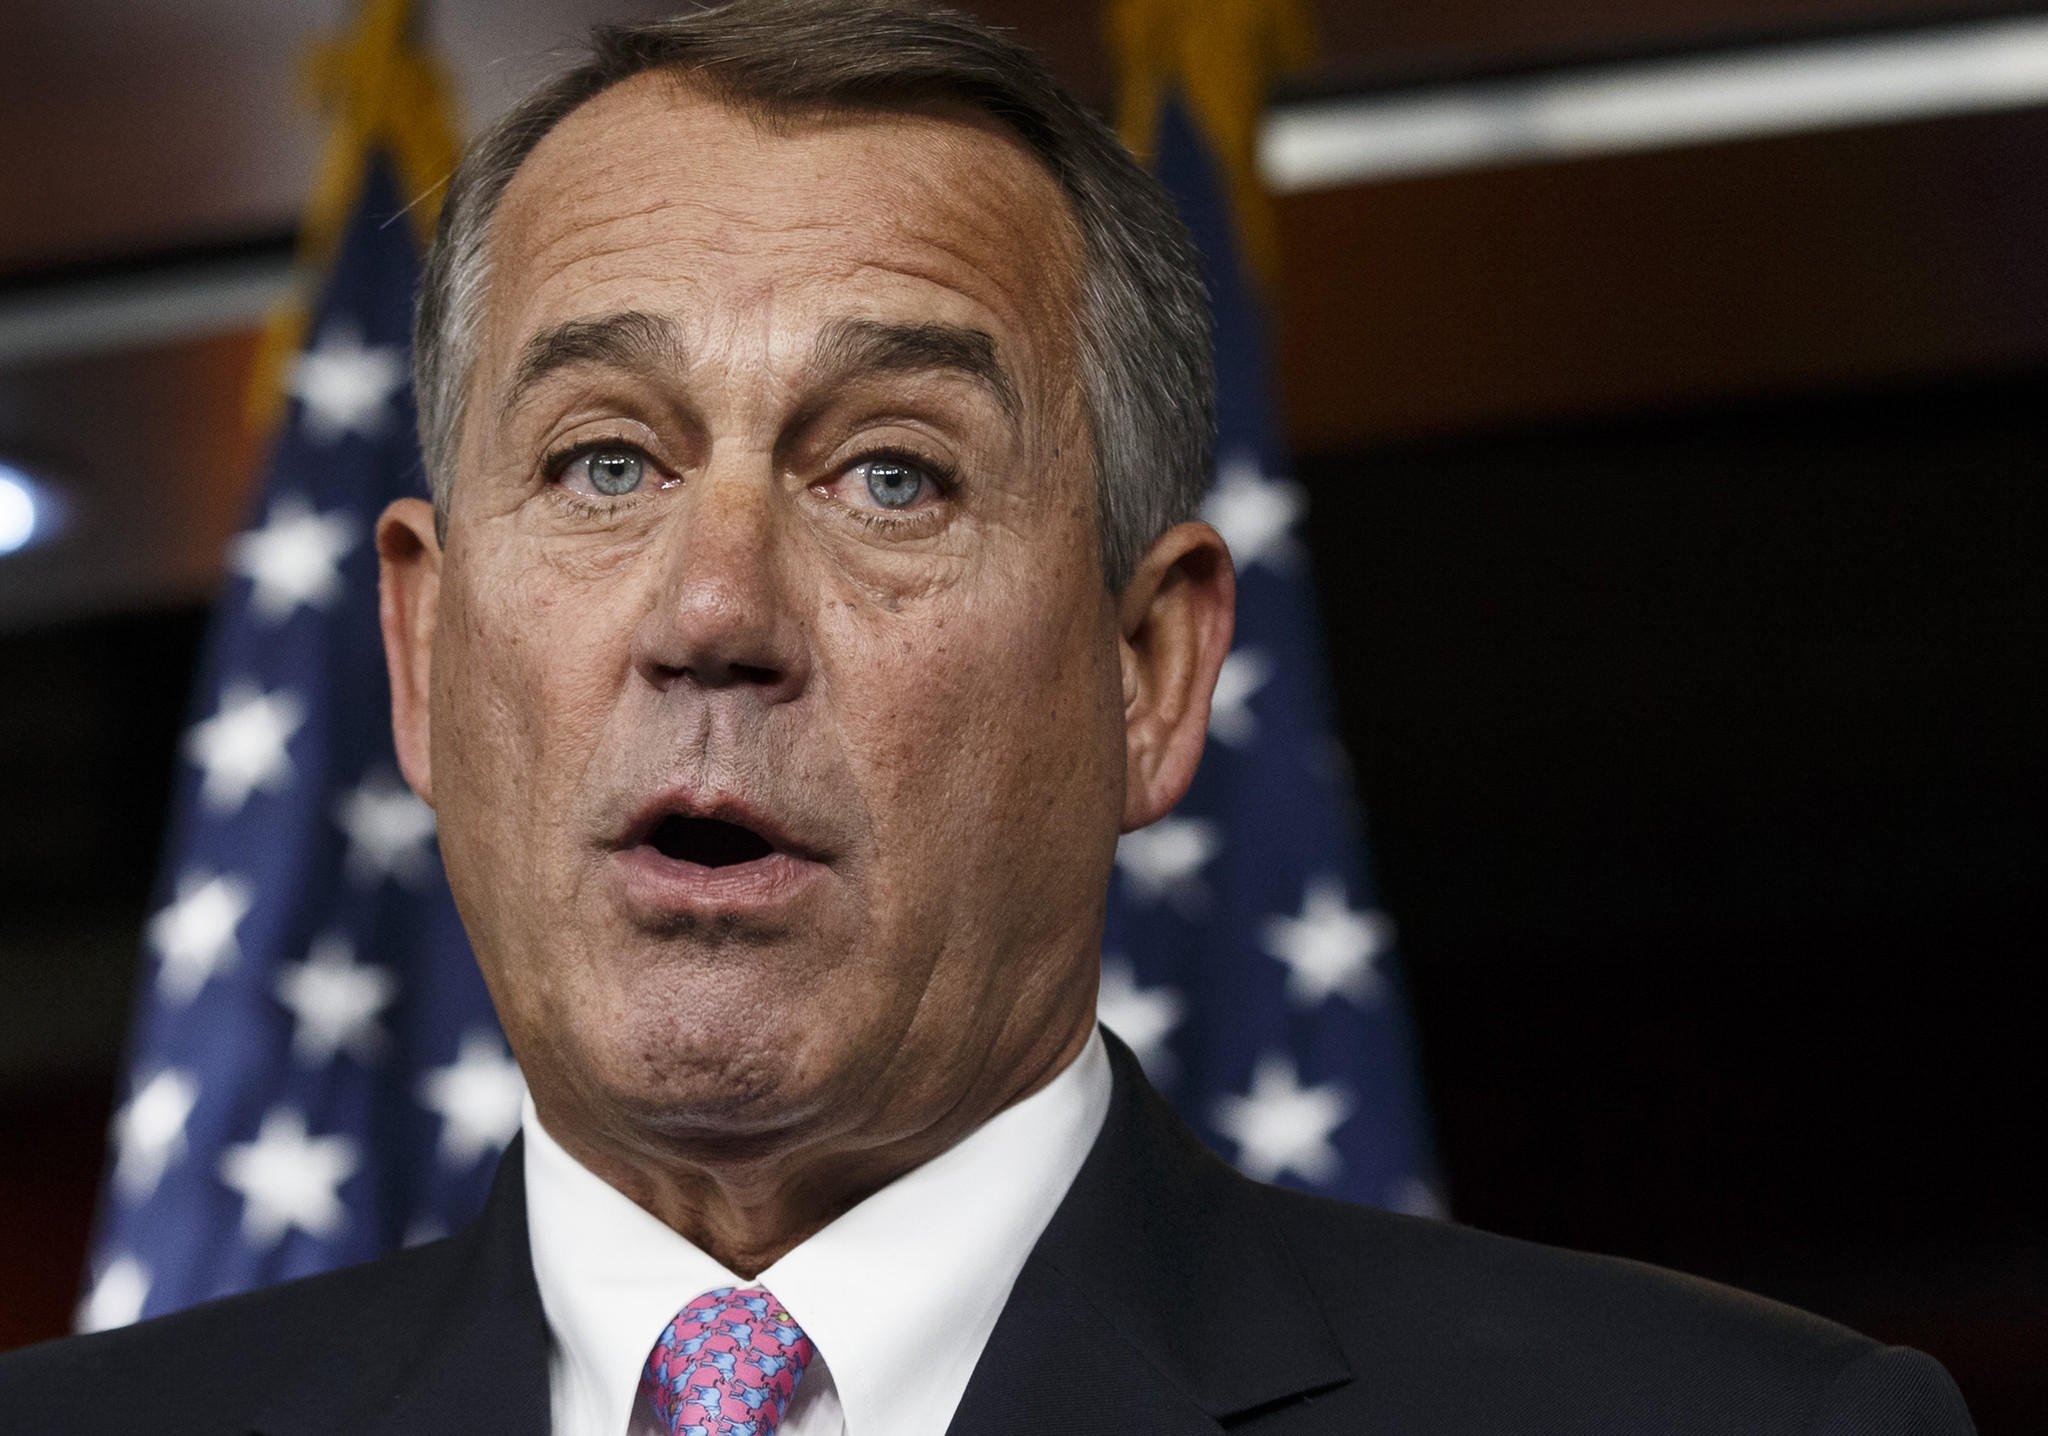 A measure proposed by a bipartisan group of senators to extend jobless benefits for the long-term unemployed is unworkable, House Speaker John Boehner said. Above, Boehner at a news conference last month.